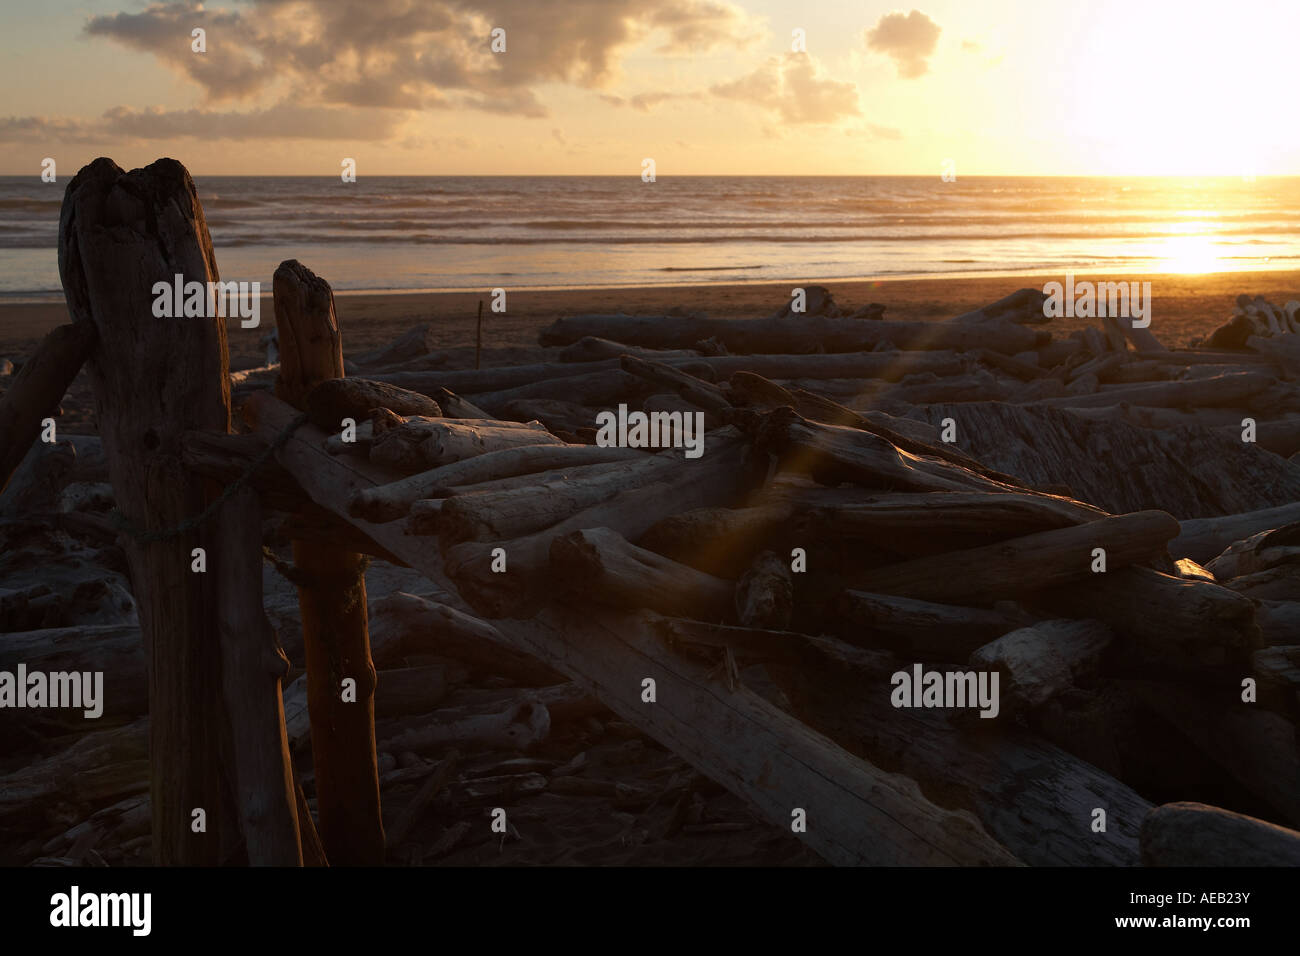 Sunset Over Giant Wood Structure on Kalaloch Beach, Olympic